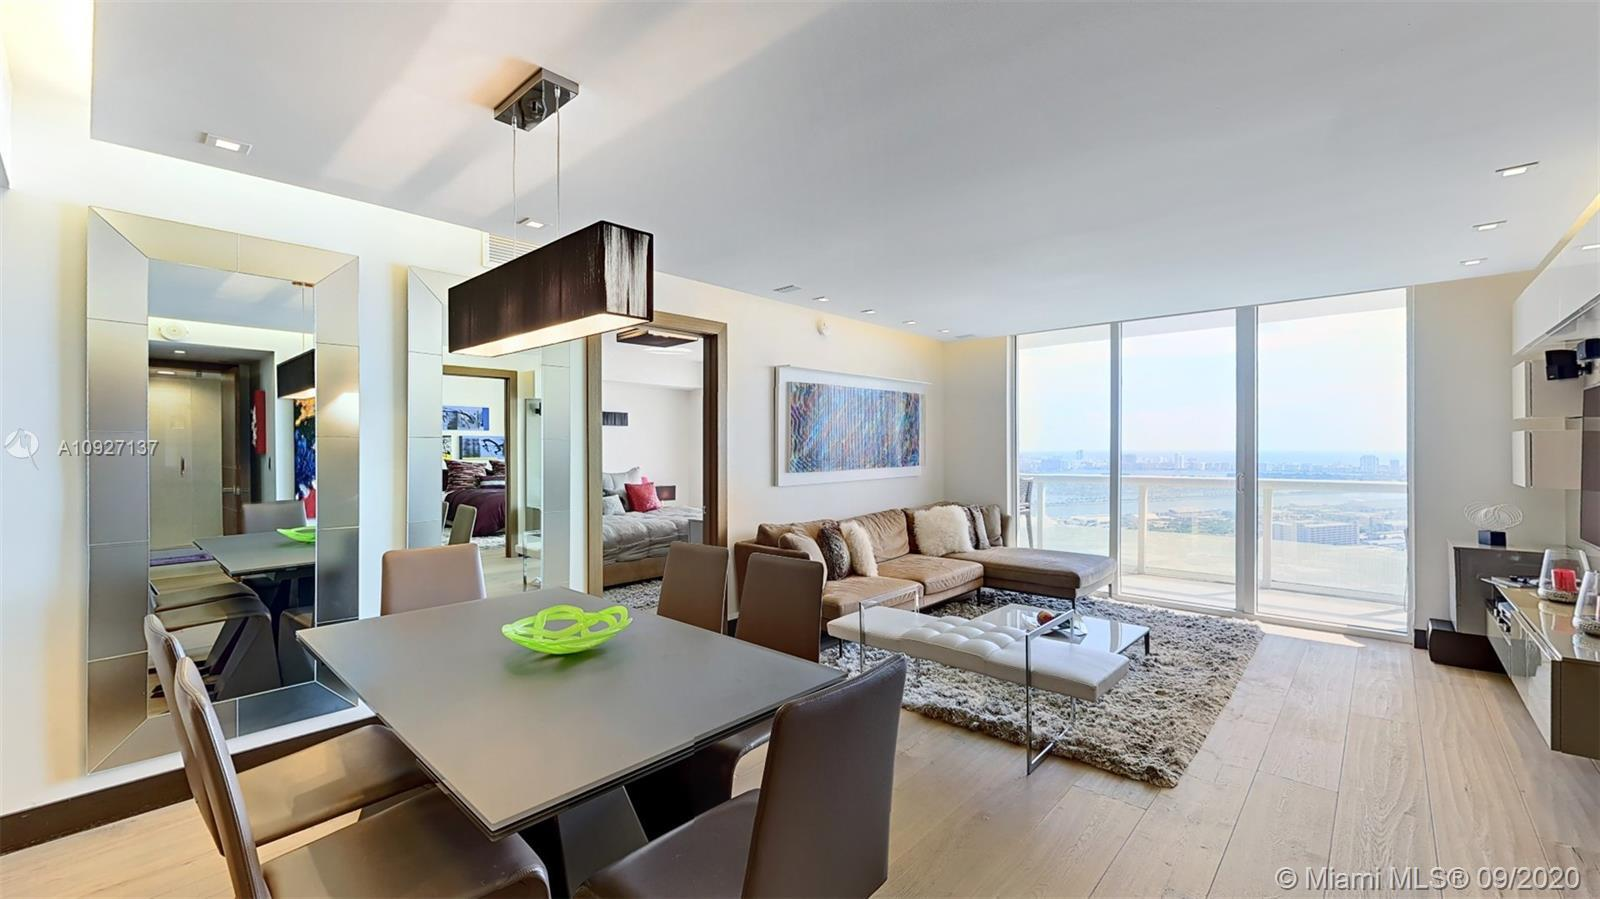 This stunningly upgraded residence features direct unobstructed views of Biscayne Bay and Miami Beac